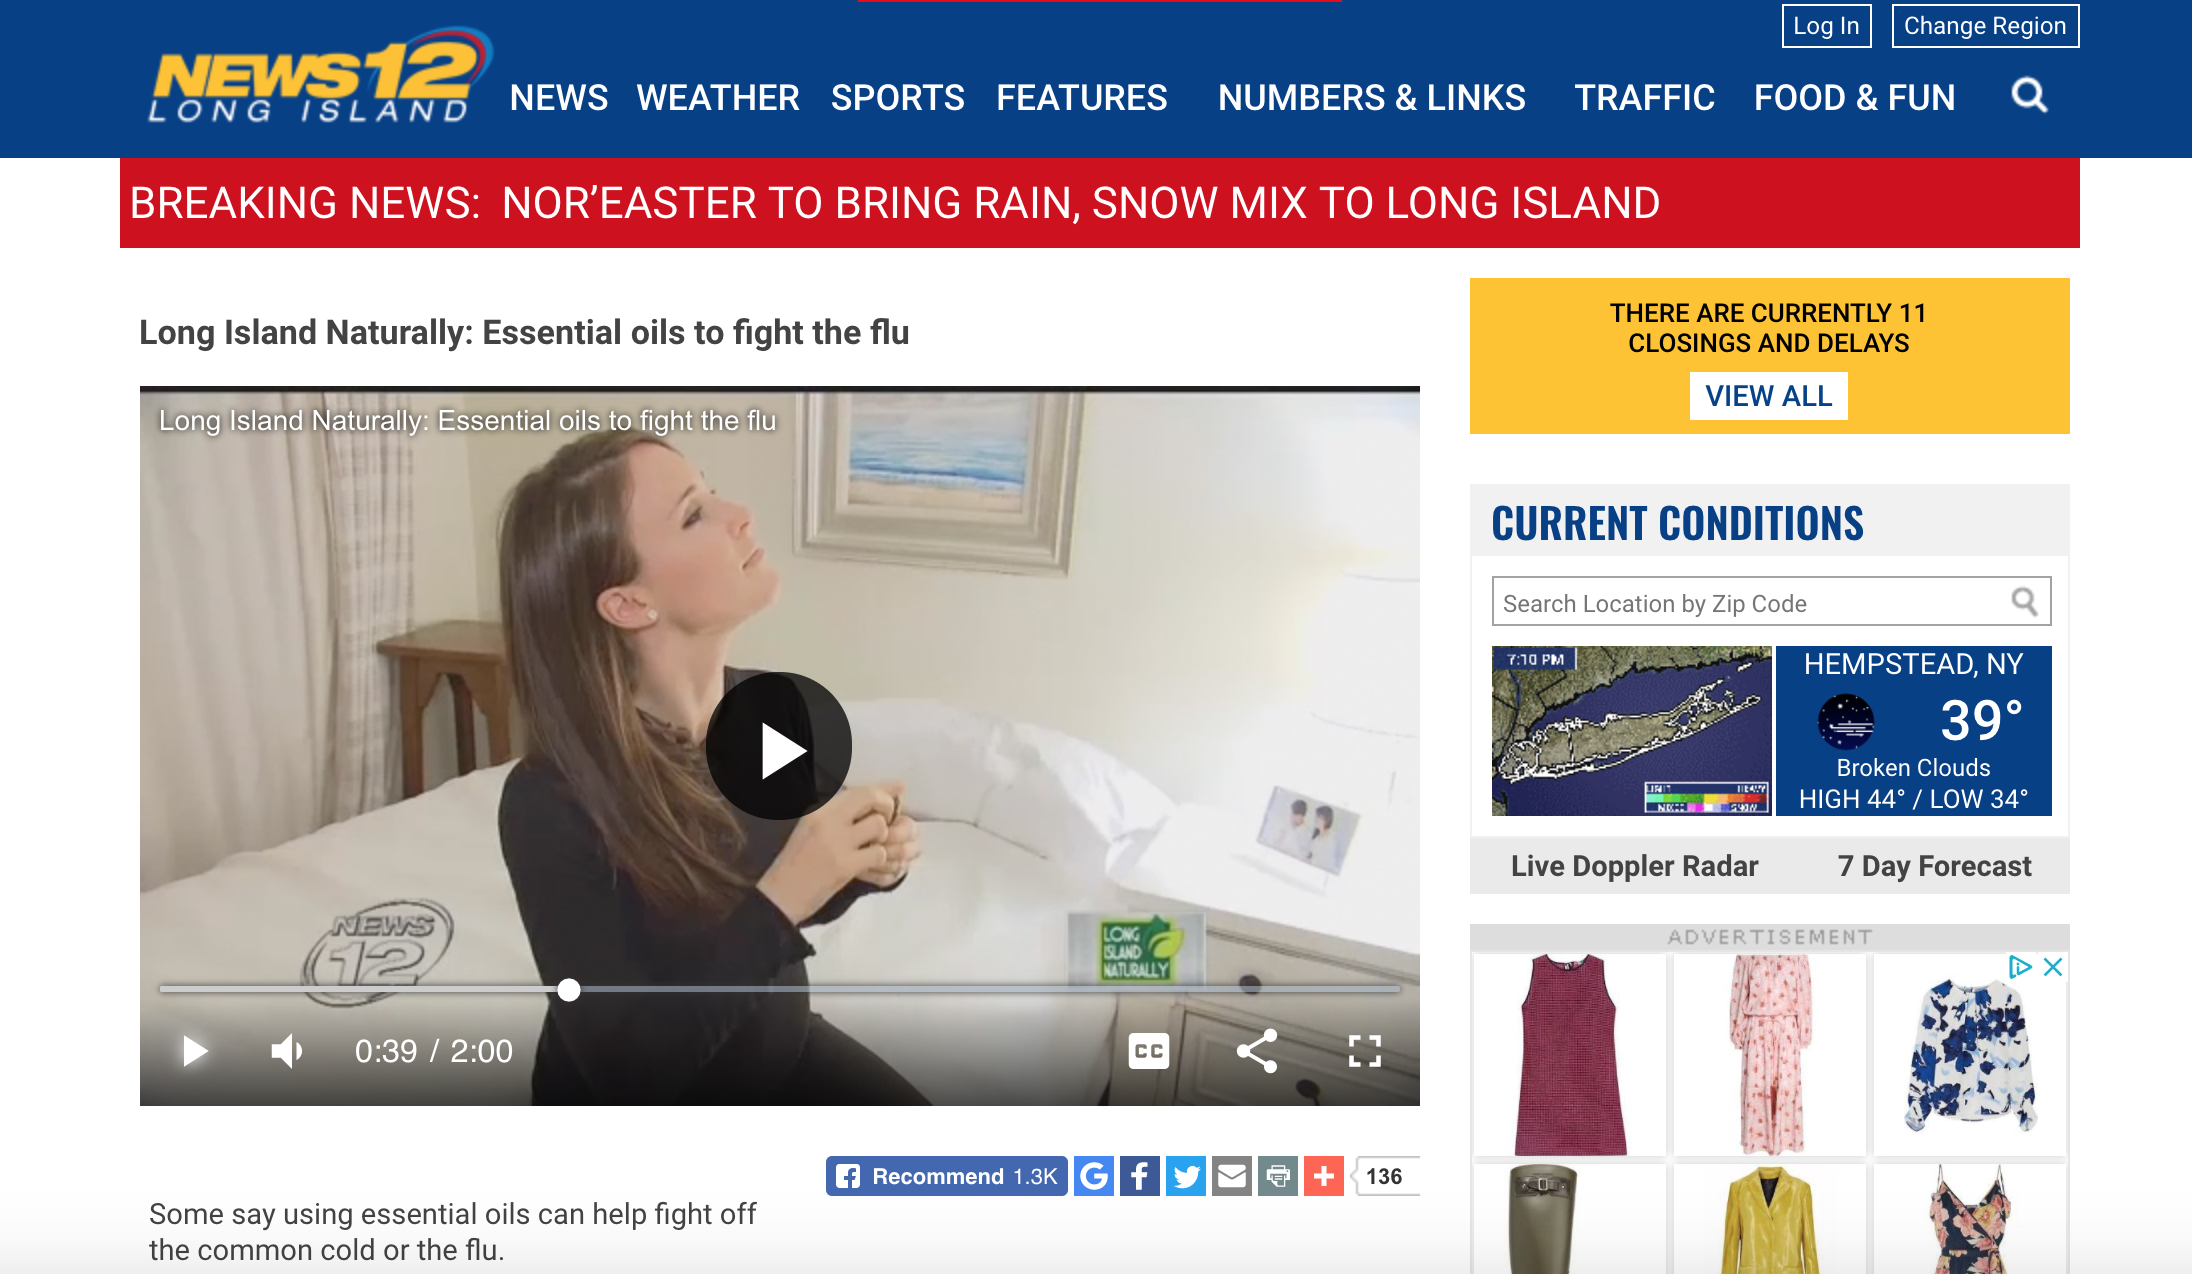 News 12 LI/ Long Island Naturally - Essential Oils to Fight the Flu. February 2018